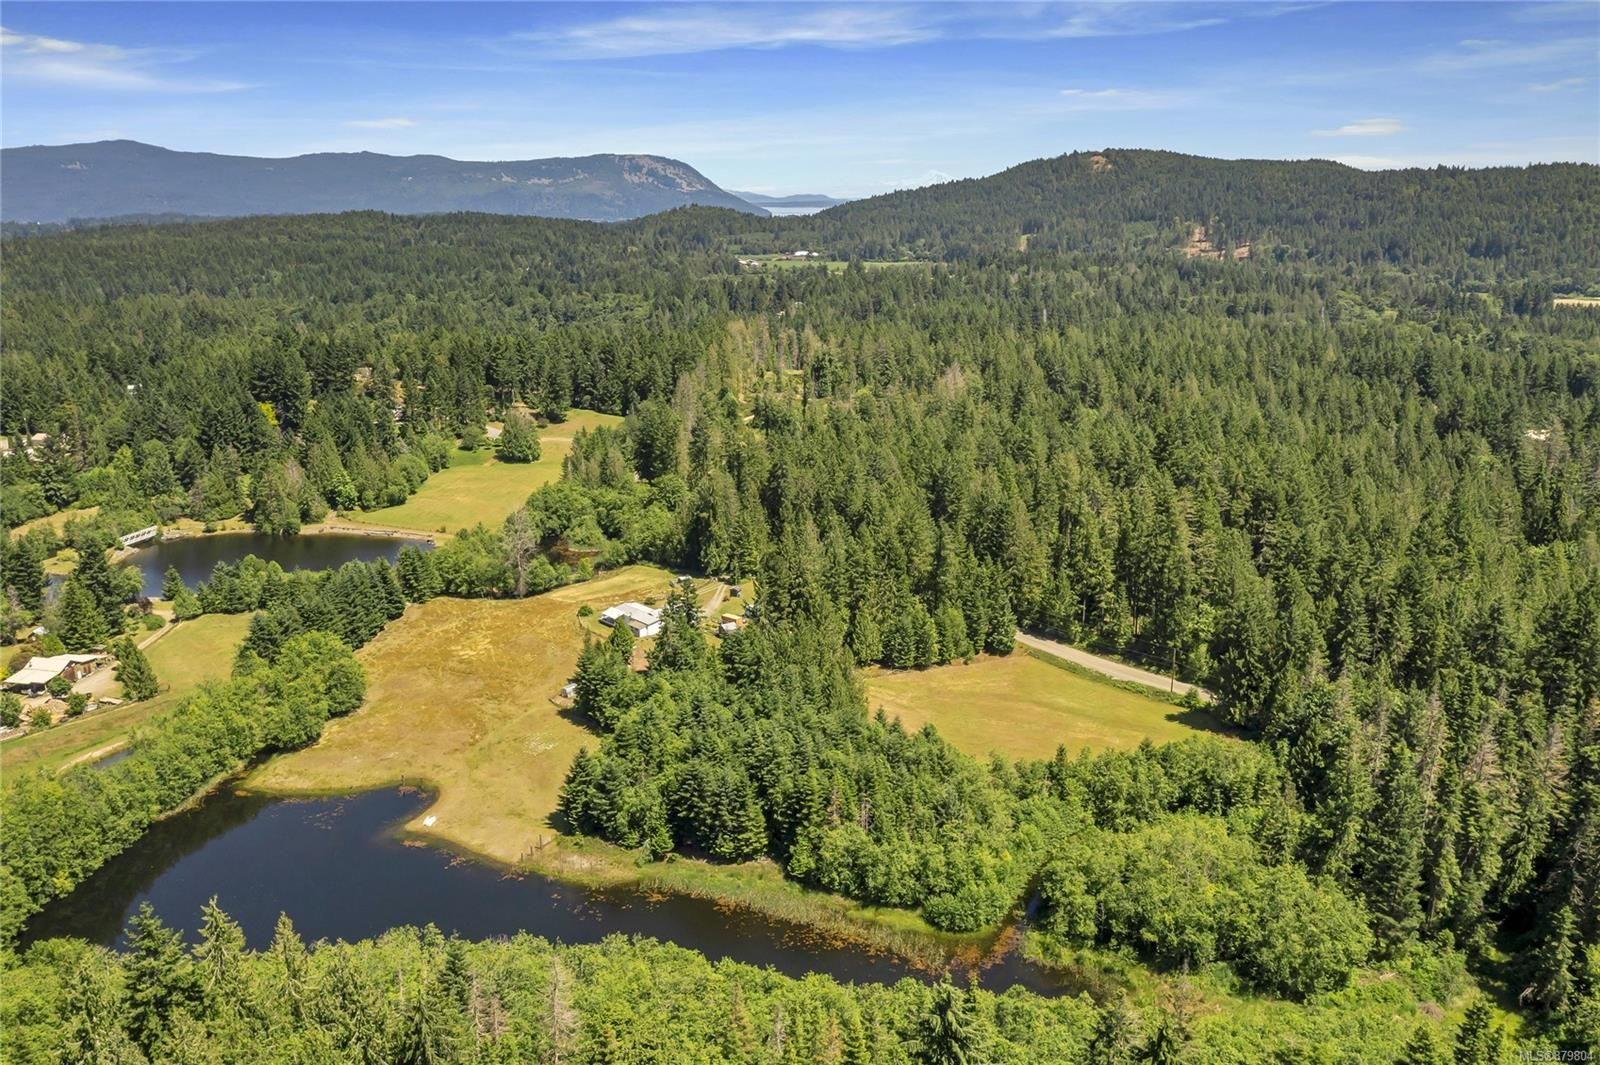 Photo 3: Photos: 3596 Riverside Rd in : ML Cobble Hill Manufactured Home for sale (Malahat & Area)  : MLS®# 879804